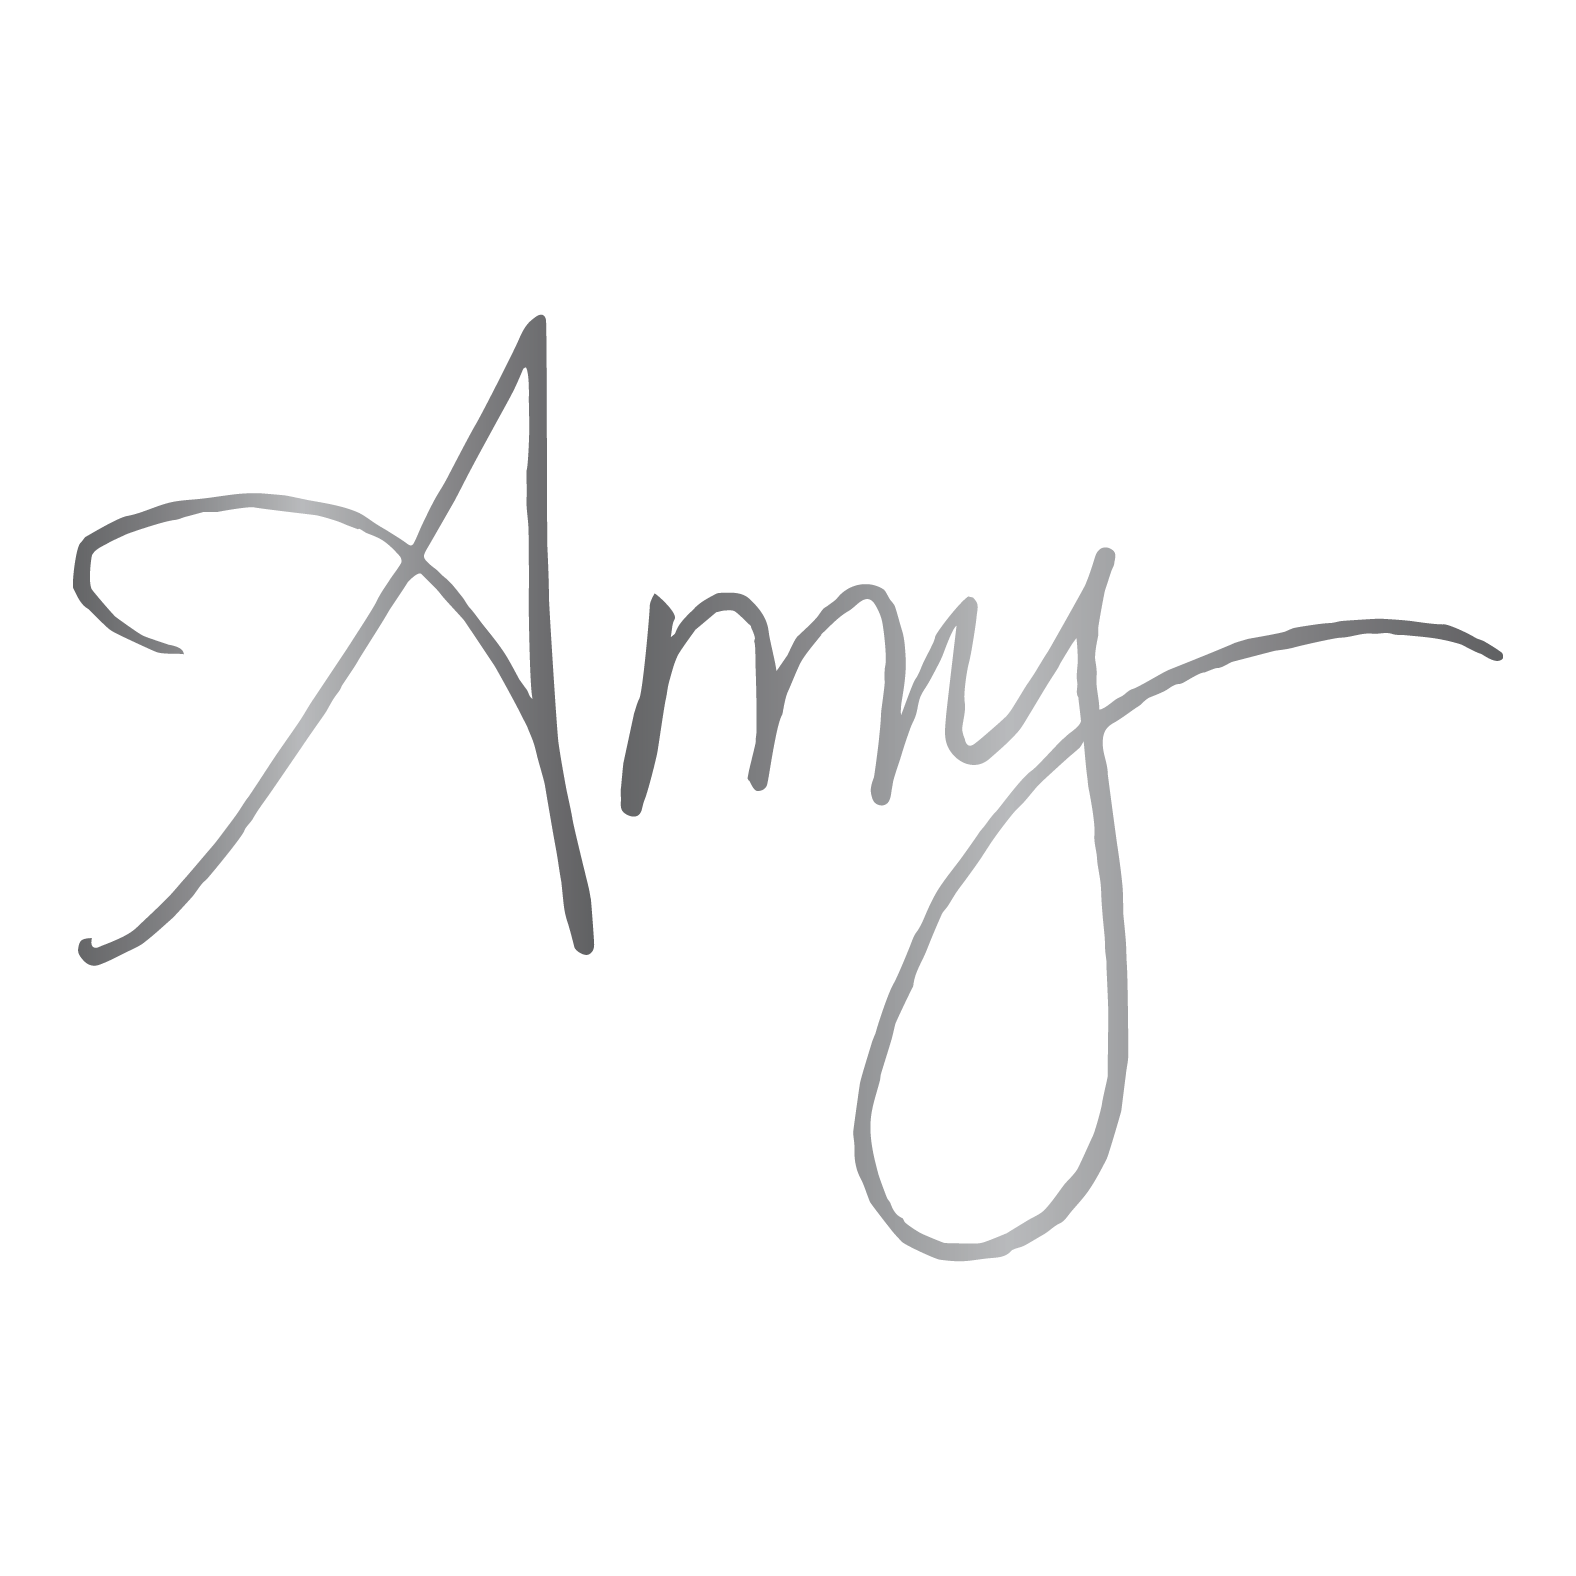 The Amy